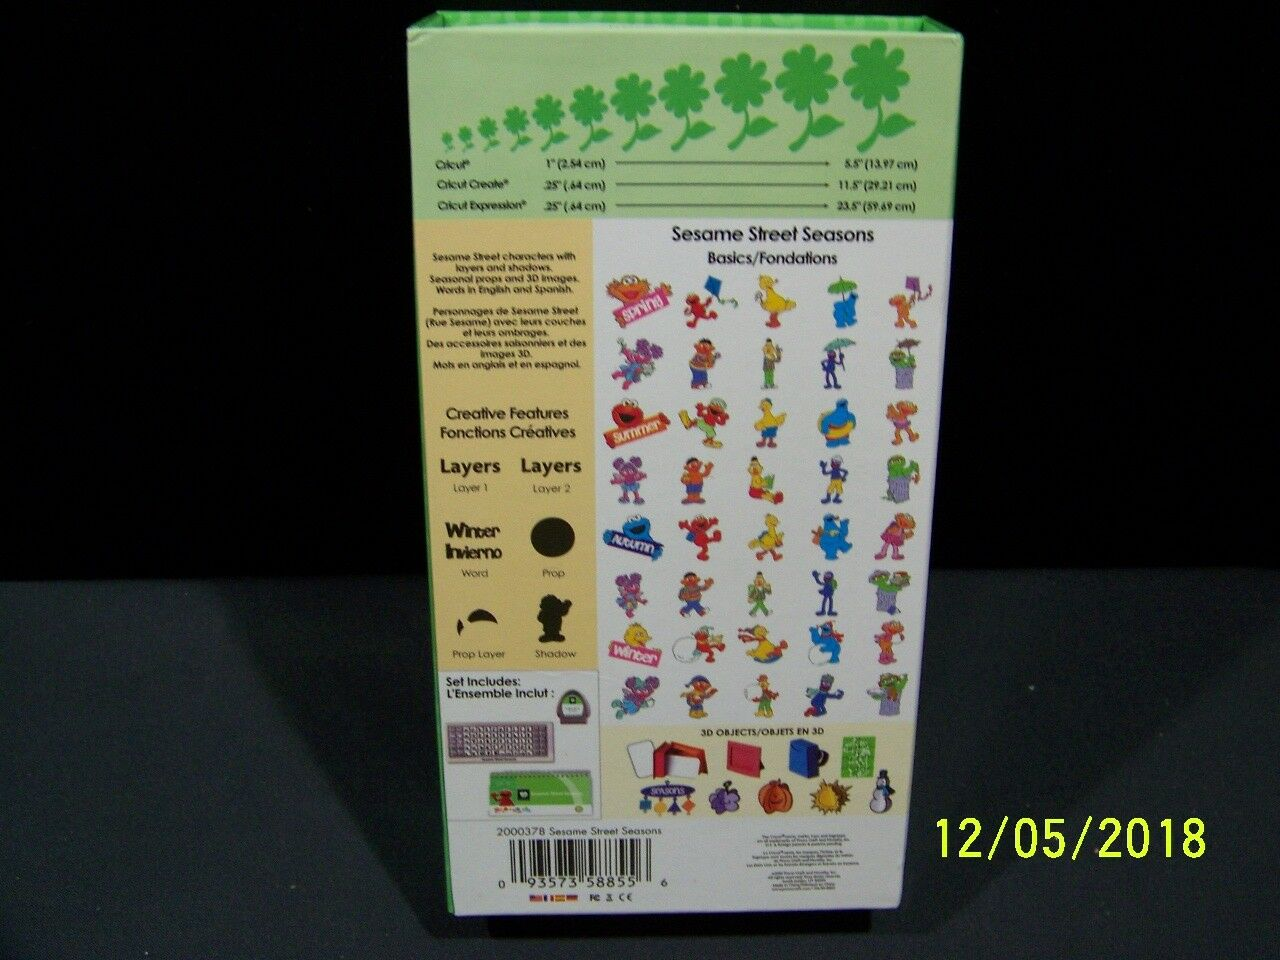 Cricut Cartridges Sesame Street Seasons Cartridge Ud1